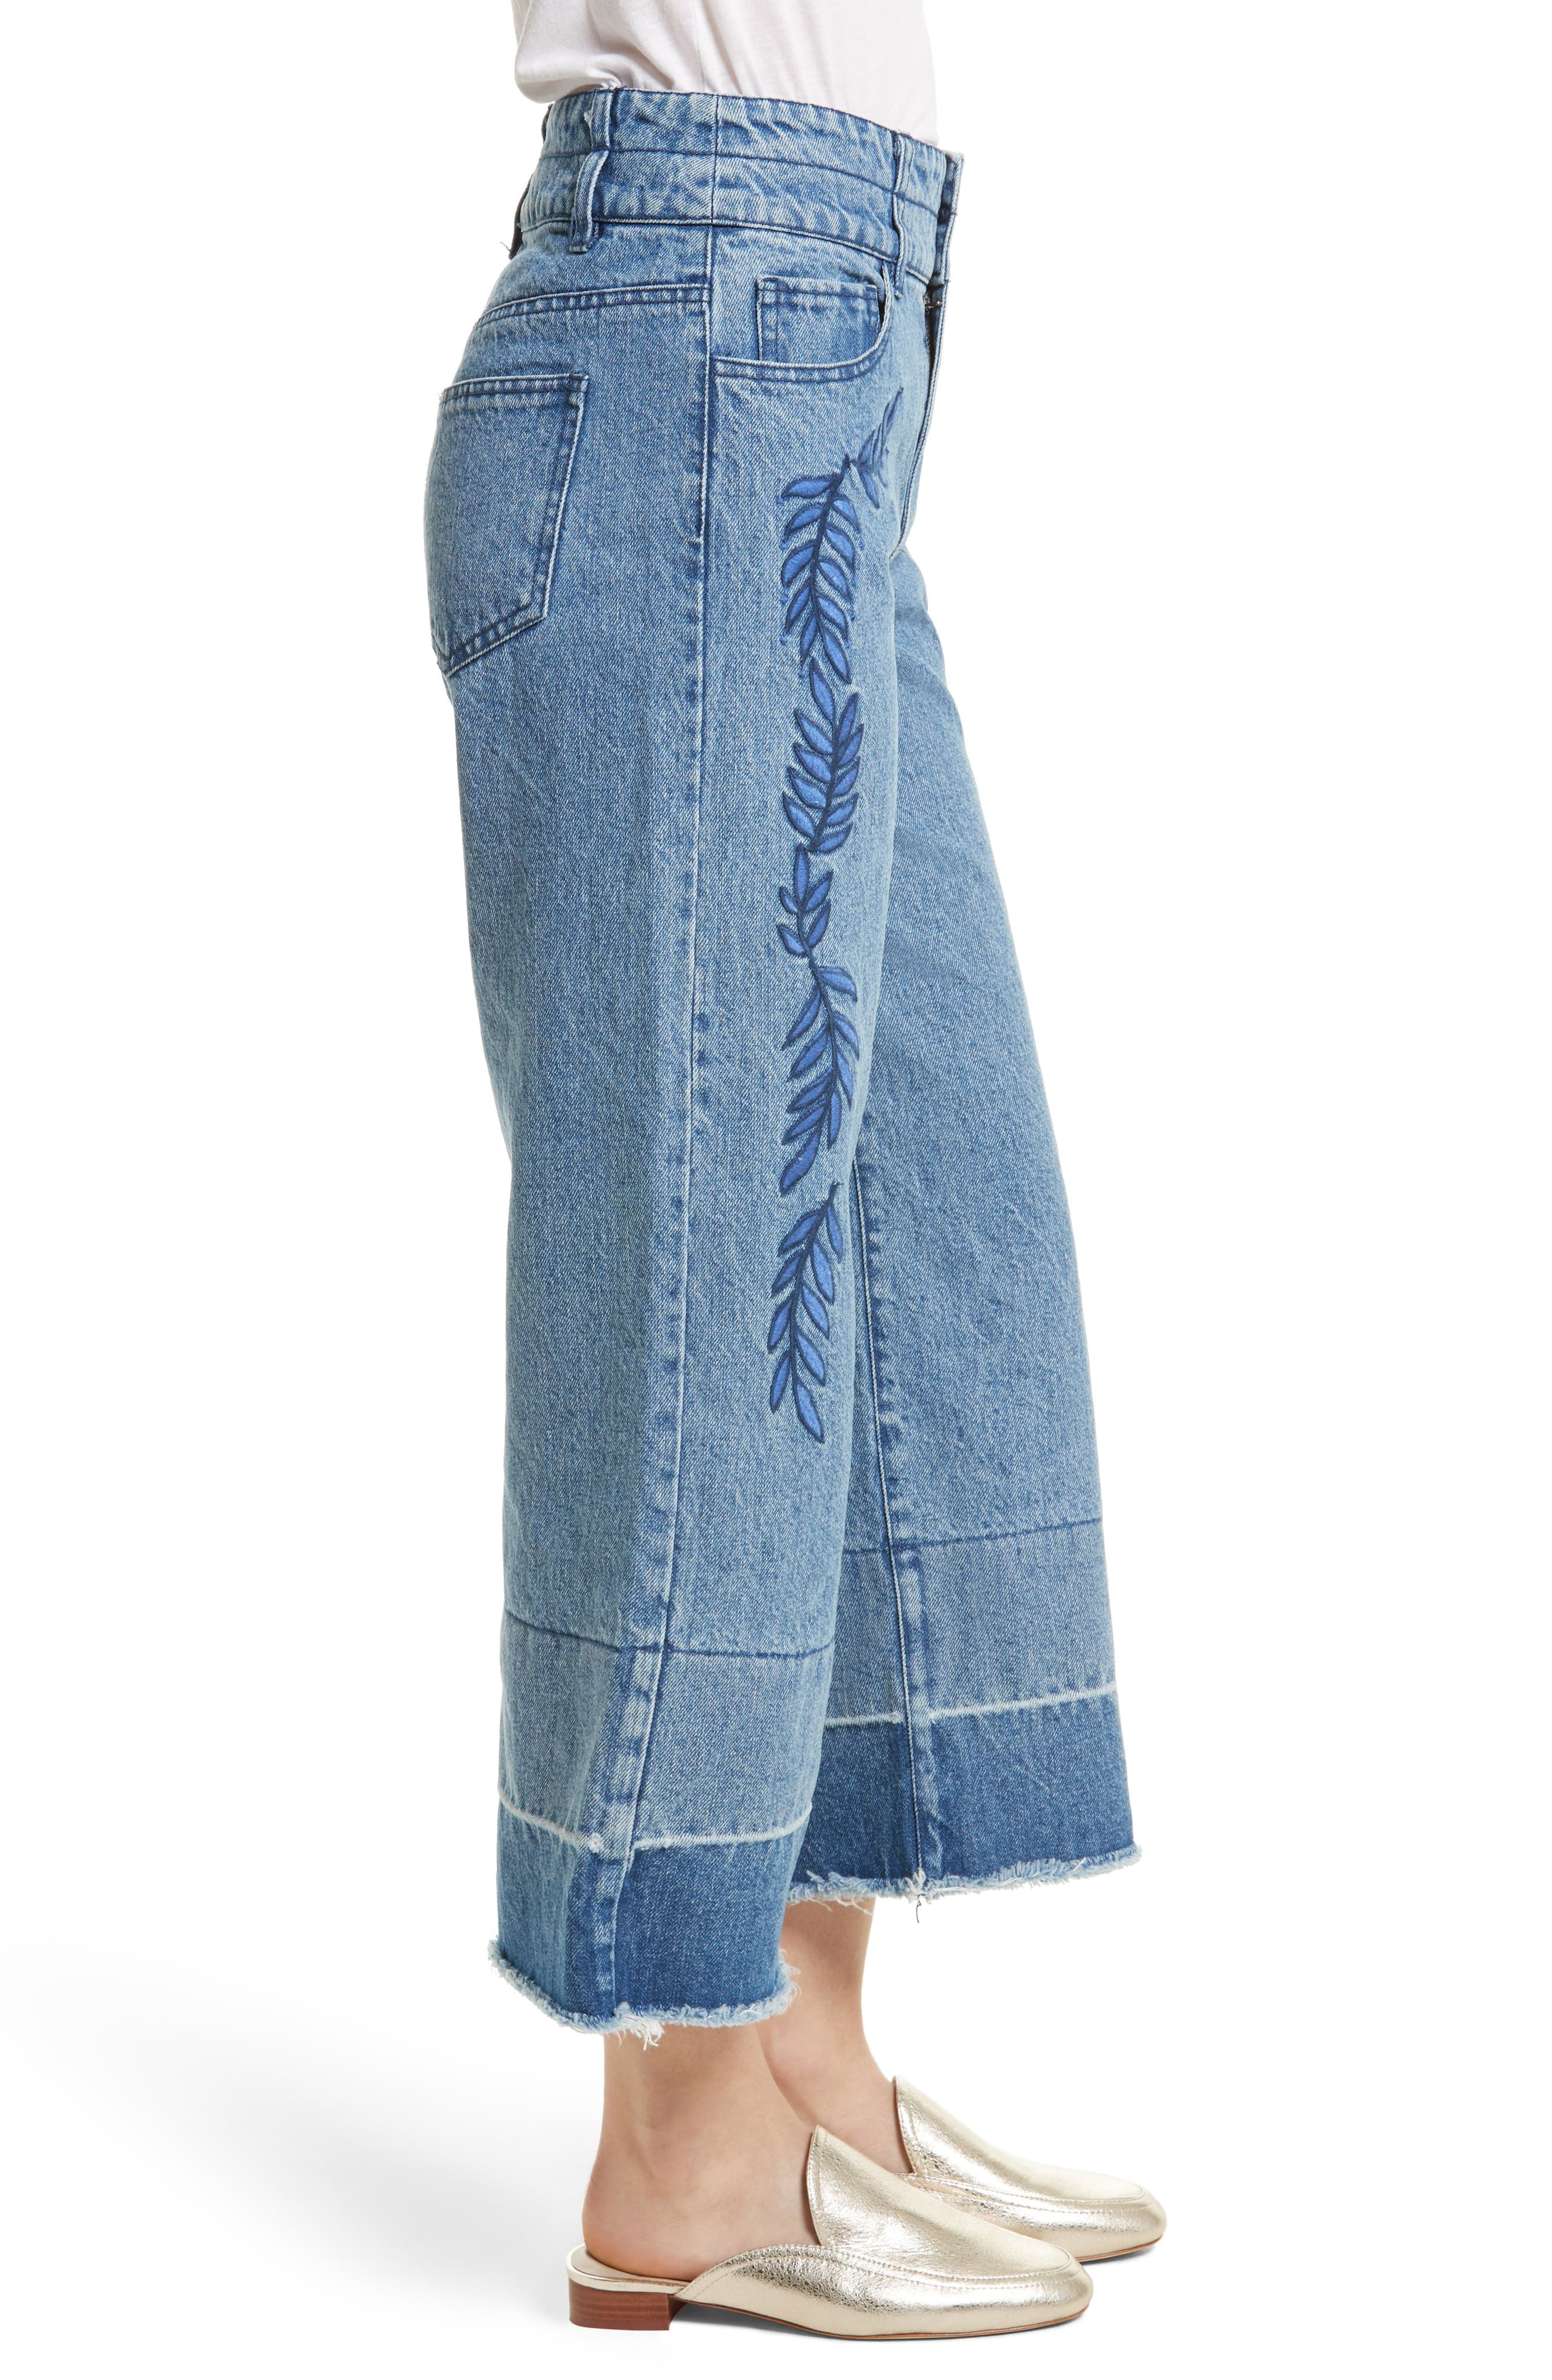 Starlight High Waist Crop Wide Leg Jeans,                             Alternate thumbnail 3, color,                             400